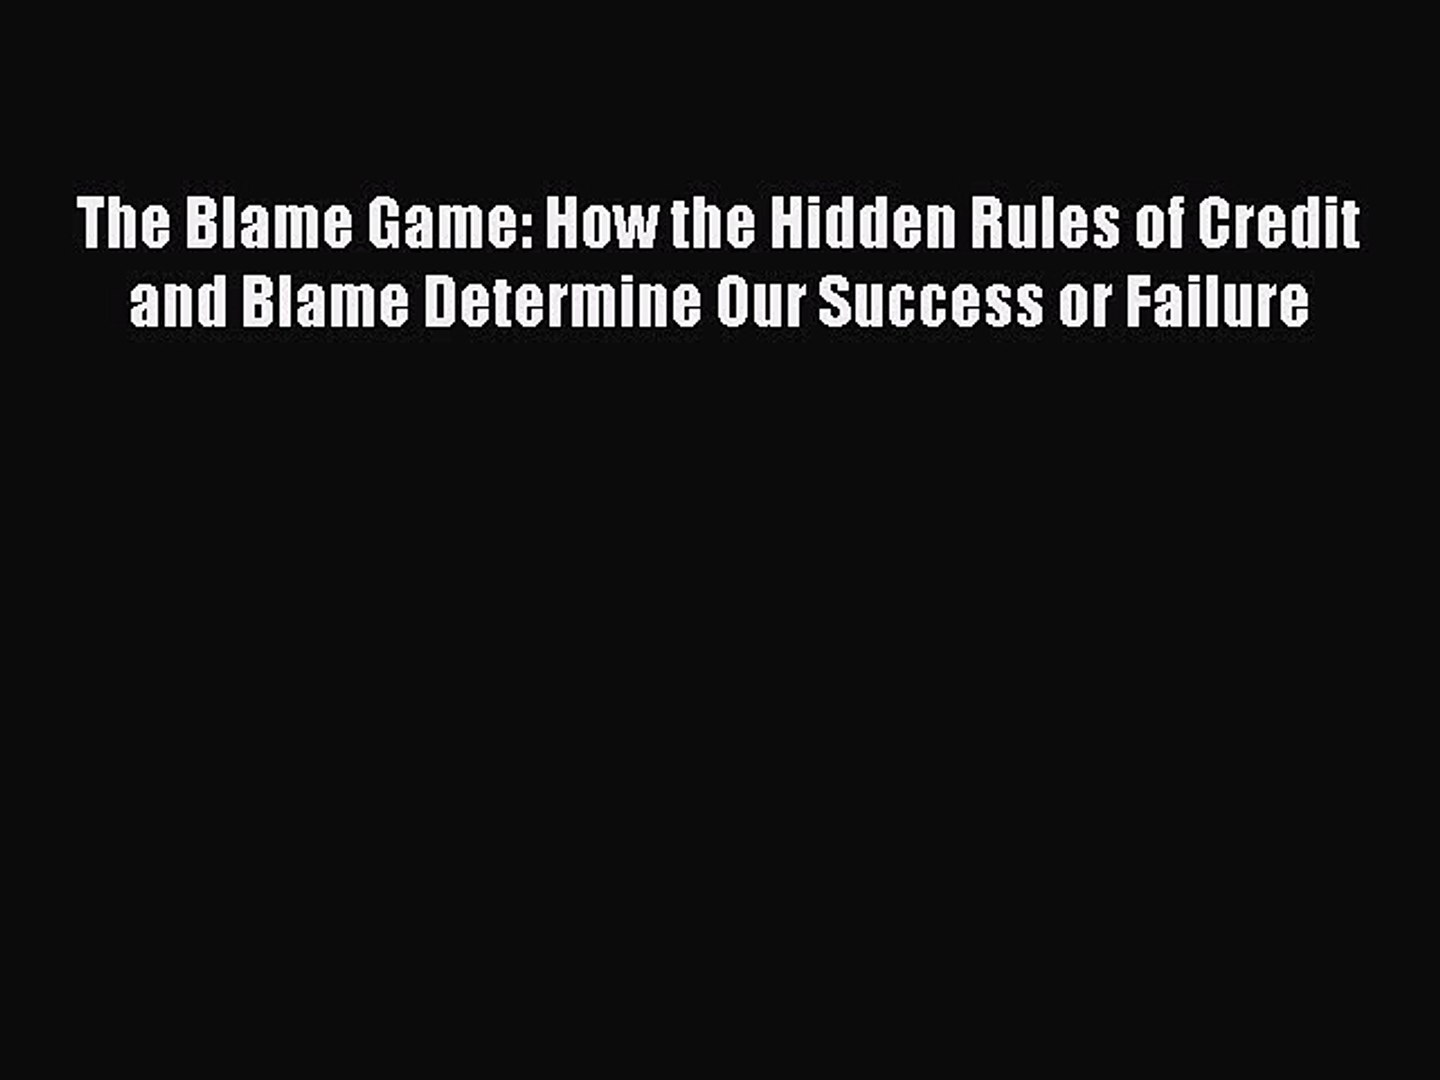 About Credit and Blame at Work